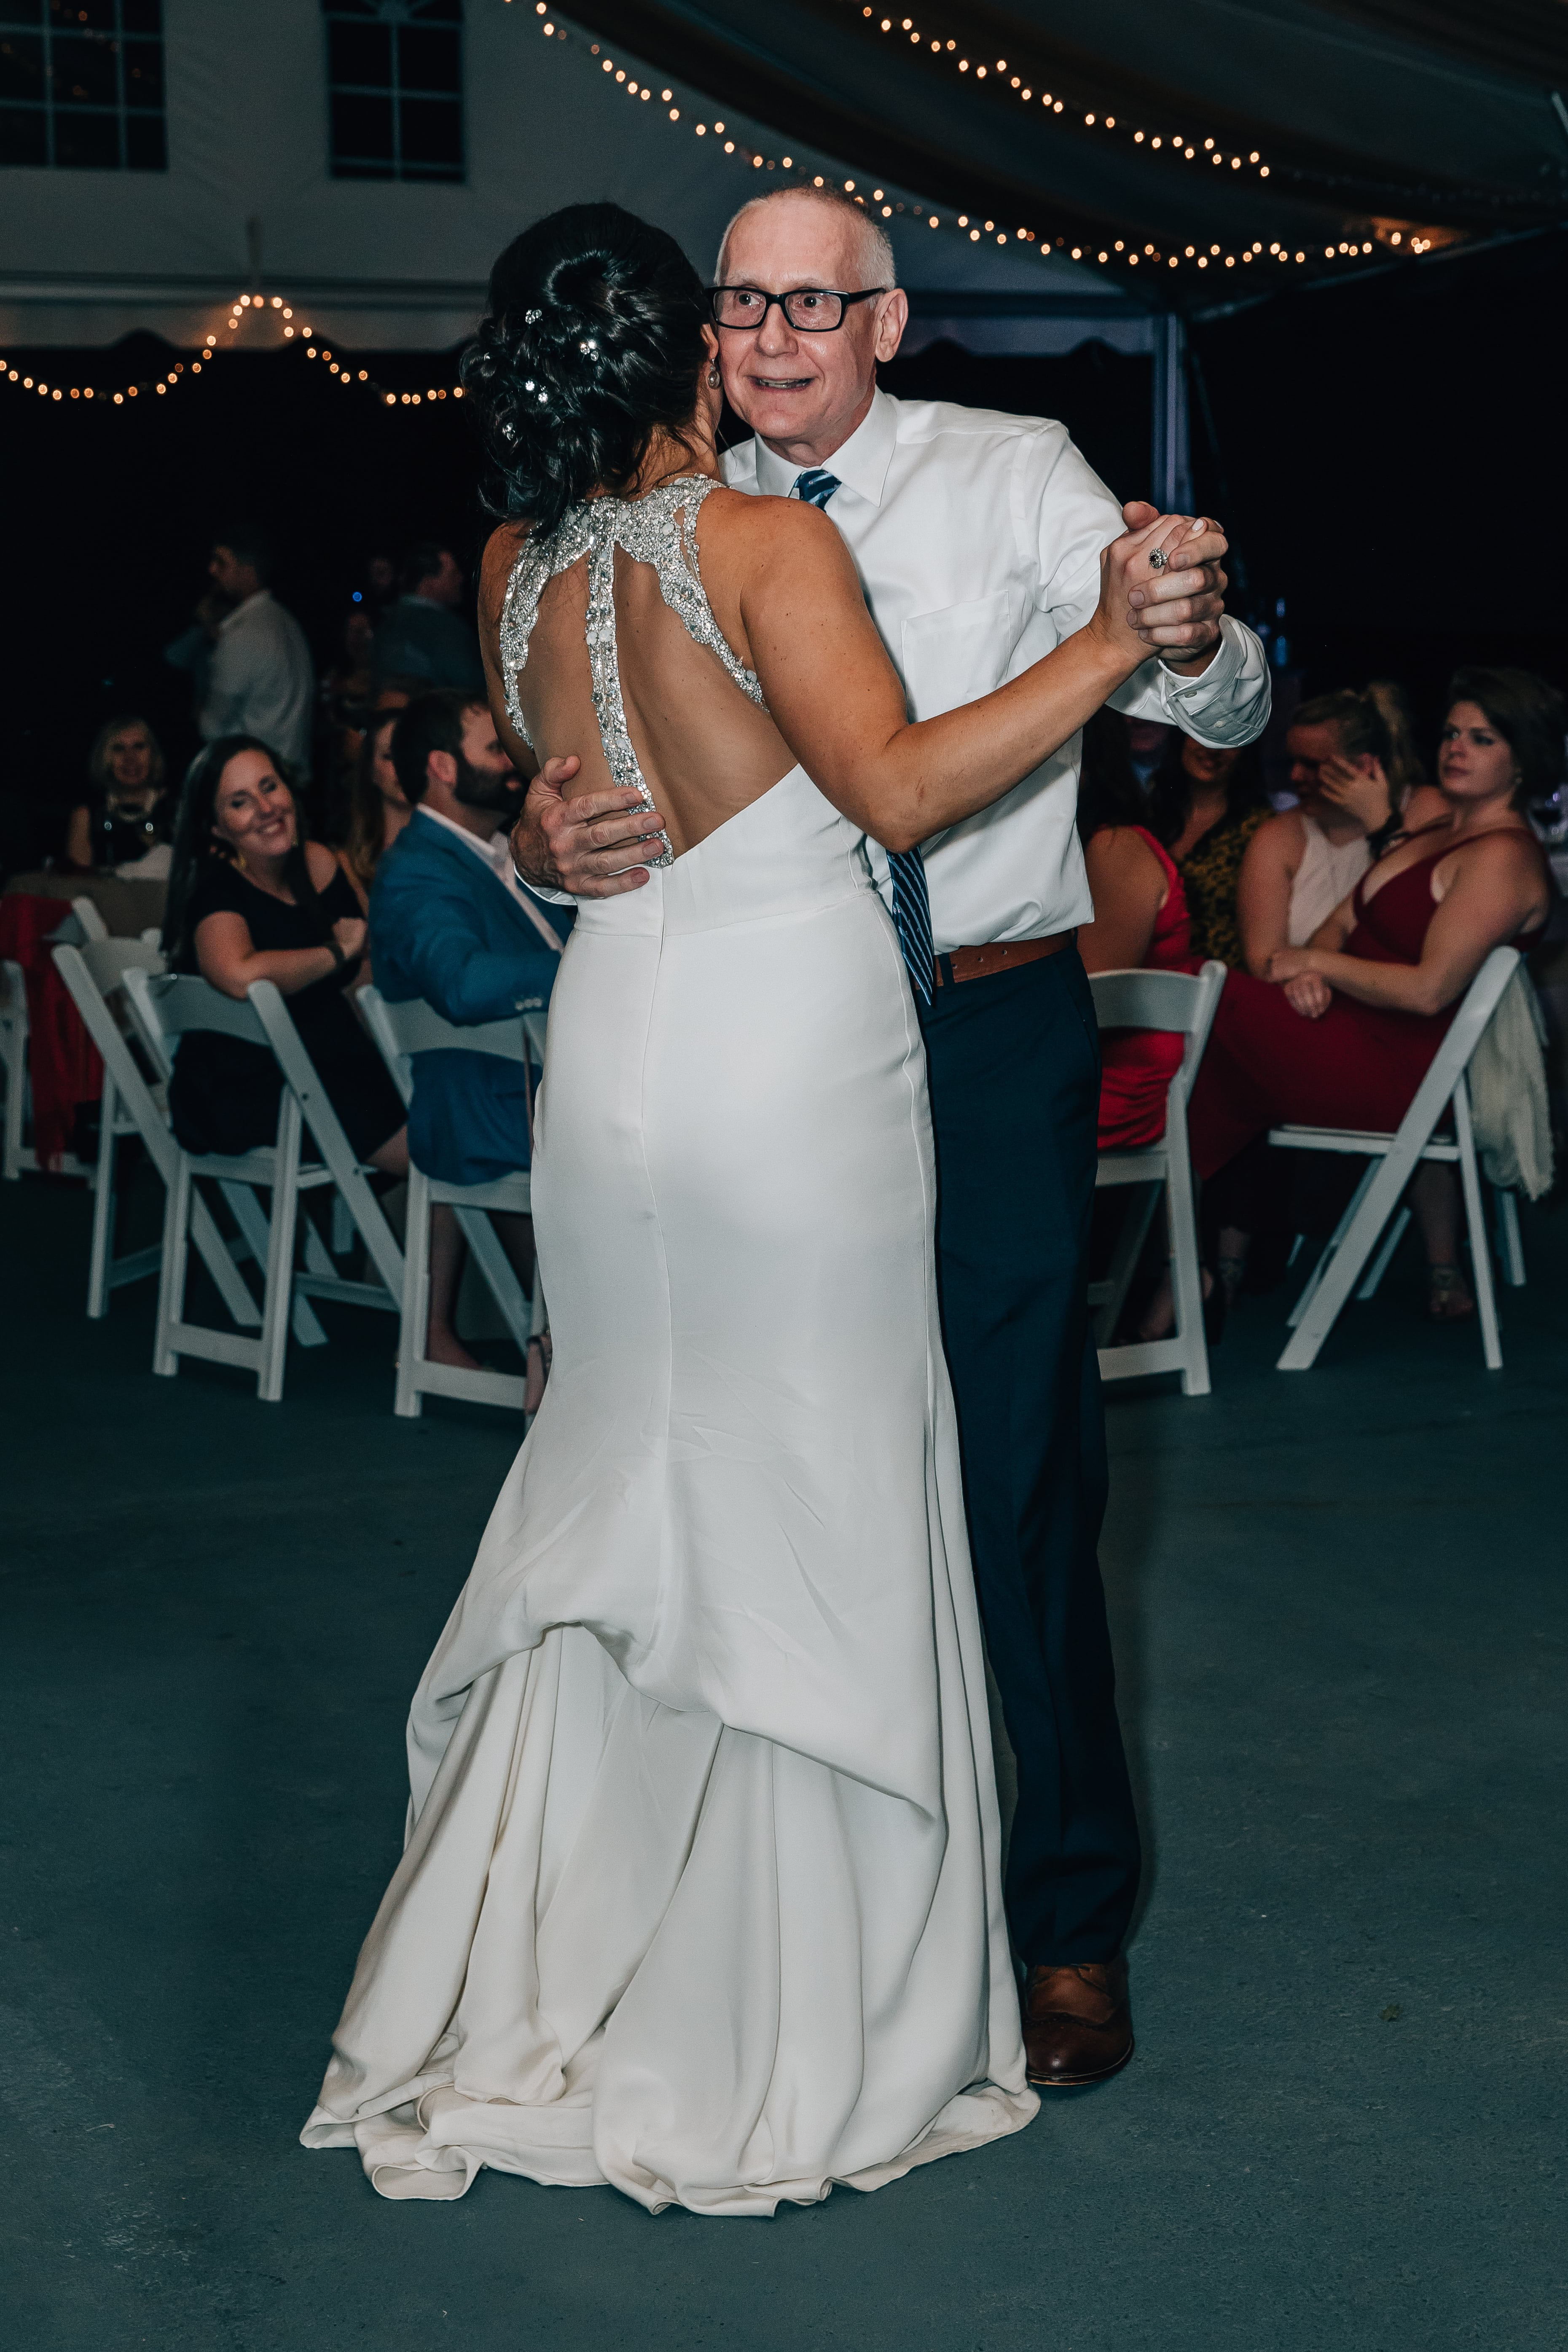 Bride dances with her father to music from Southside Station at her wedding reception designed by Magnificent Moments Weddings